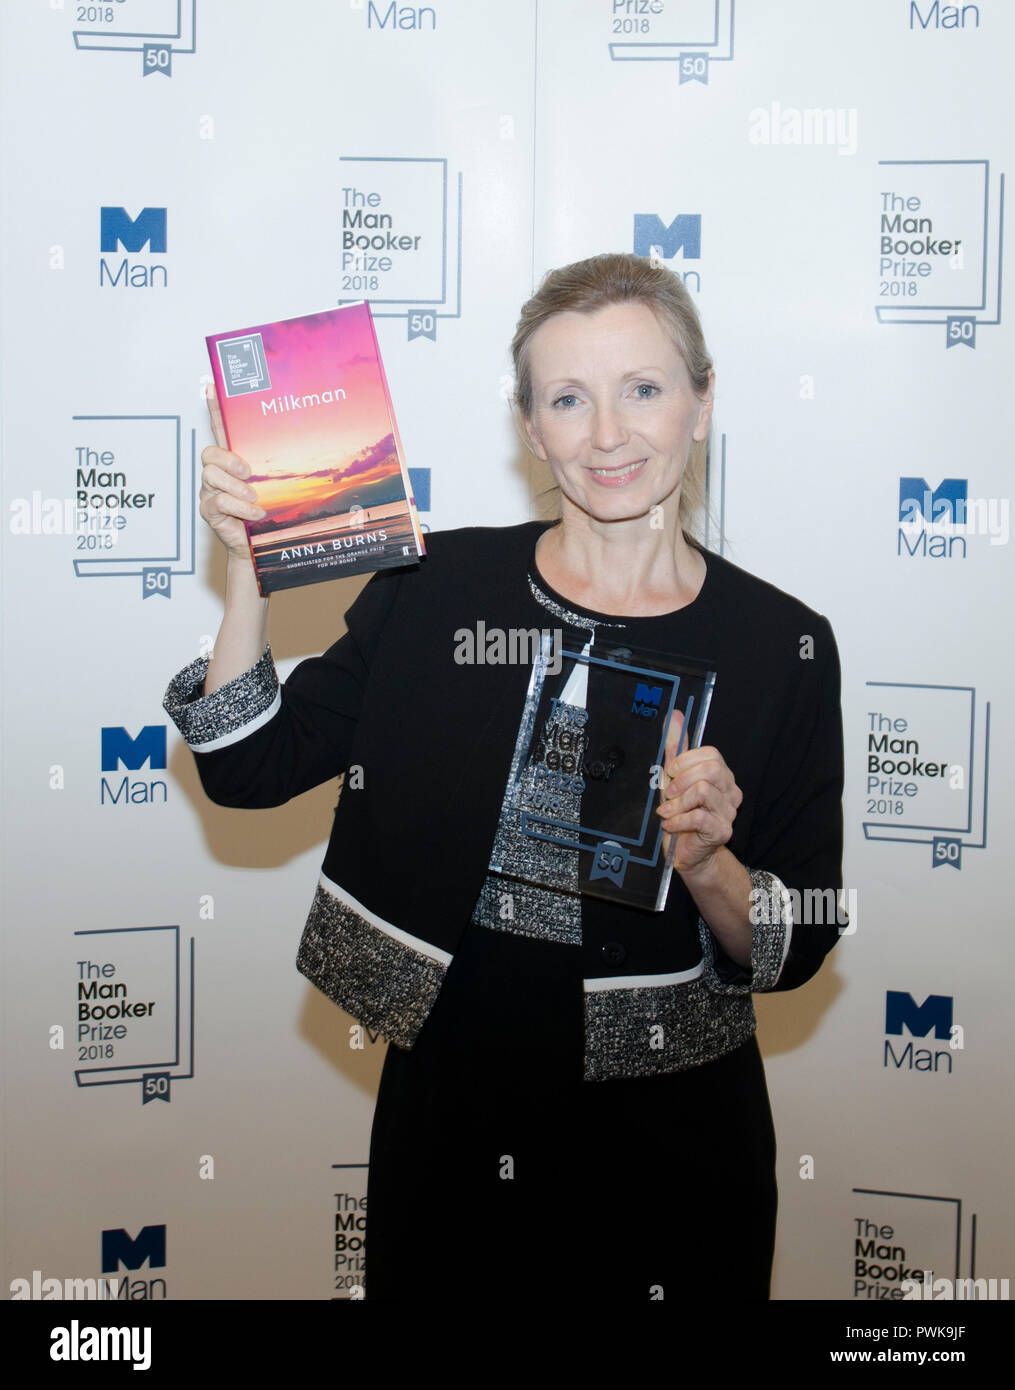 London, UK. 16th Oct 2018. Anna Burns winner of the Man Booker for fiction Prize 2018 for the novel Milkman at the photo call after winning the prize at the Guildhall London UK 16th October 2018. Burns is the first winner of the prize from Northern Ireland. The book is set in Belfast in the Troubles. Credit: Prixpics/Alamy Live News Stock Photo